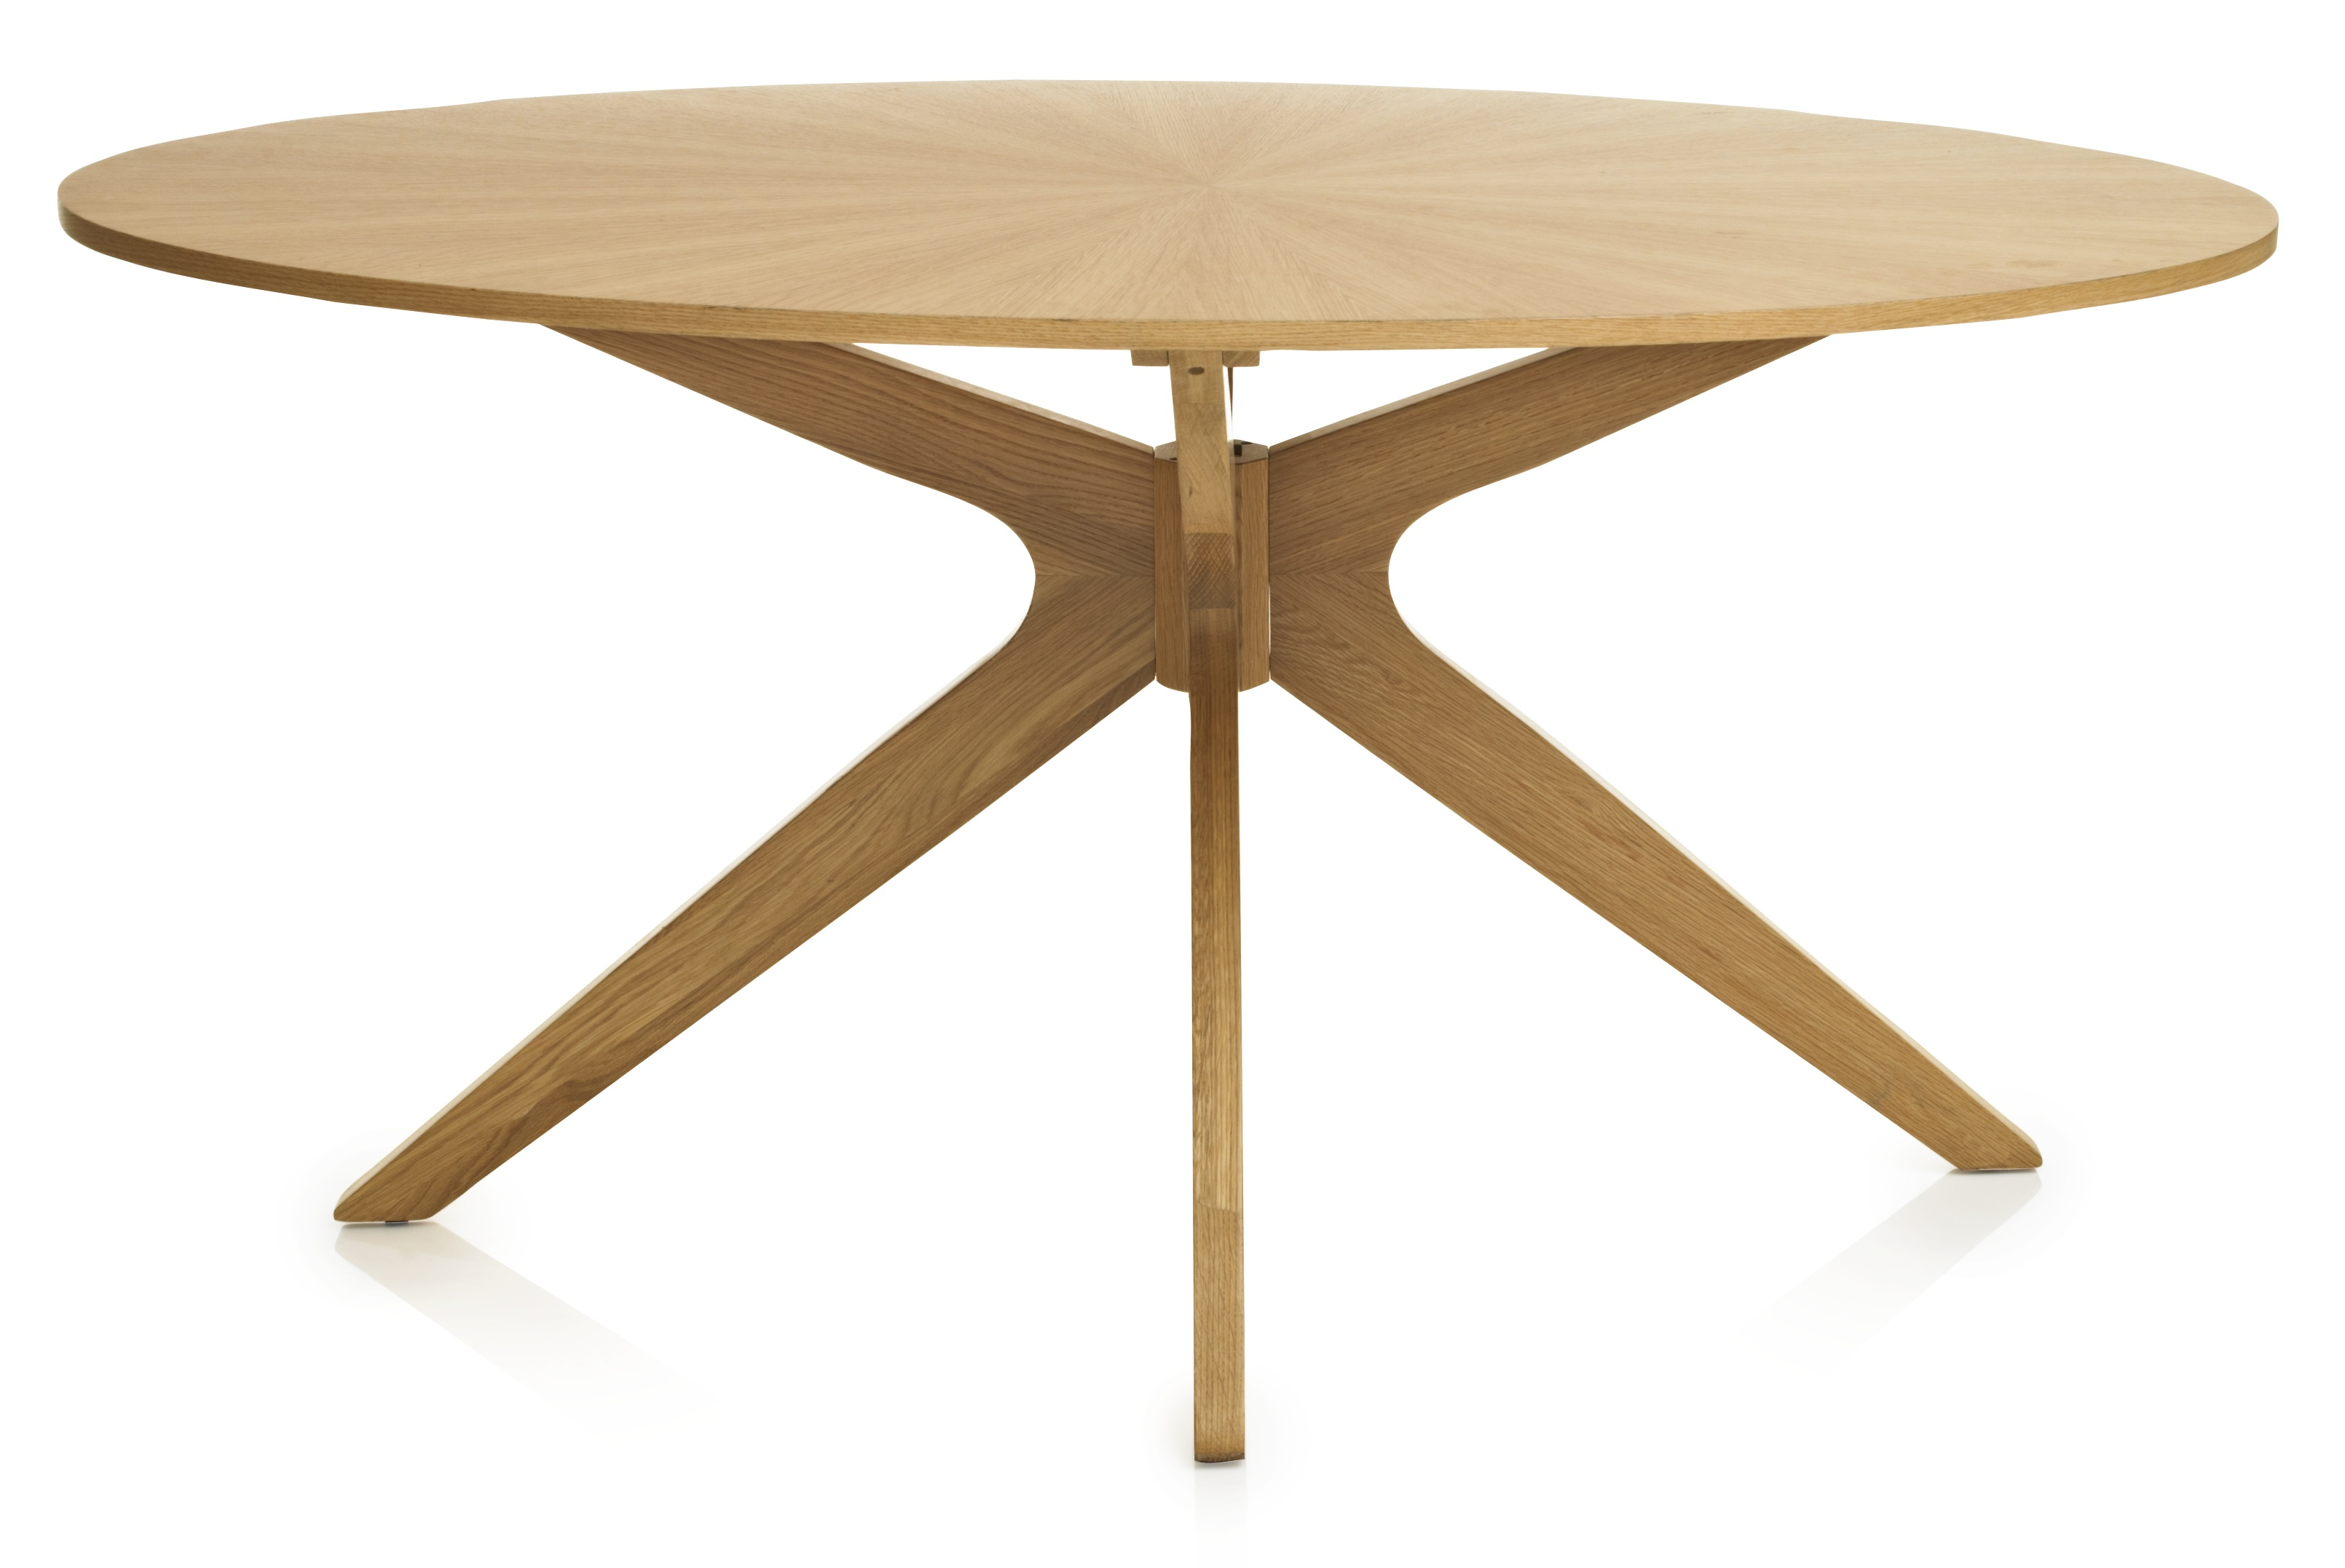 Muirfield Oak Veneer Dining Table Oval 6 Seater Modern Stylish Kitchen